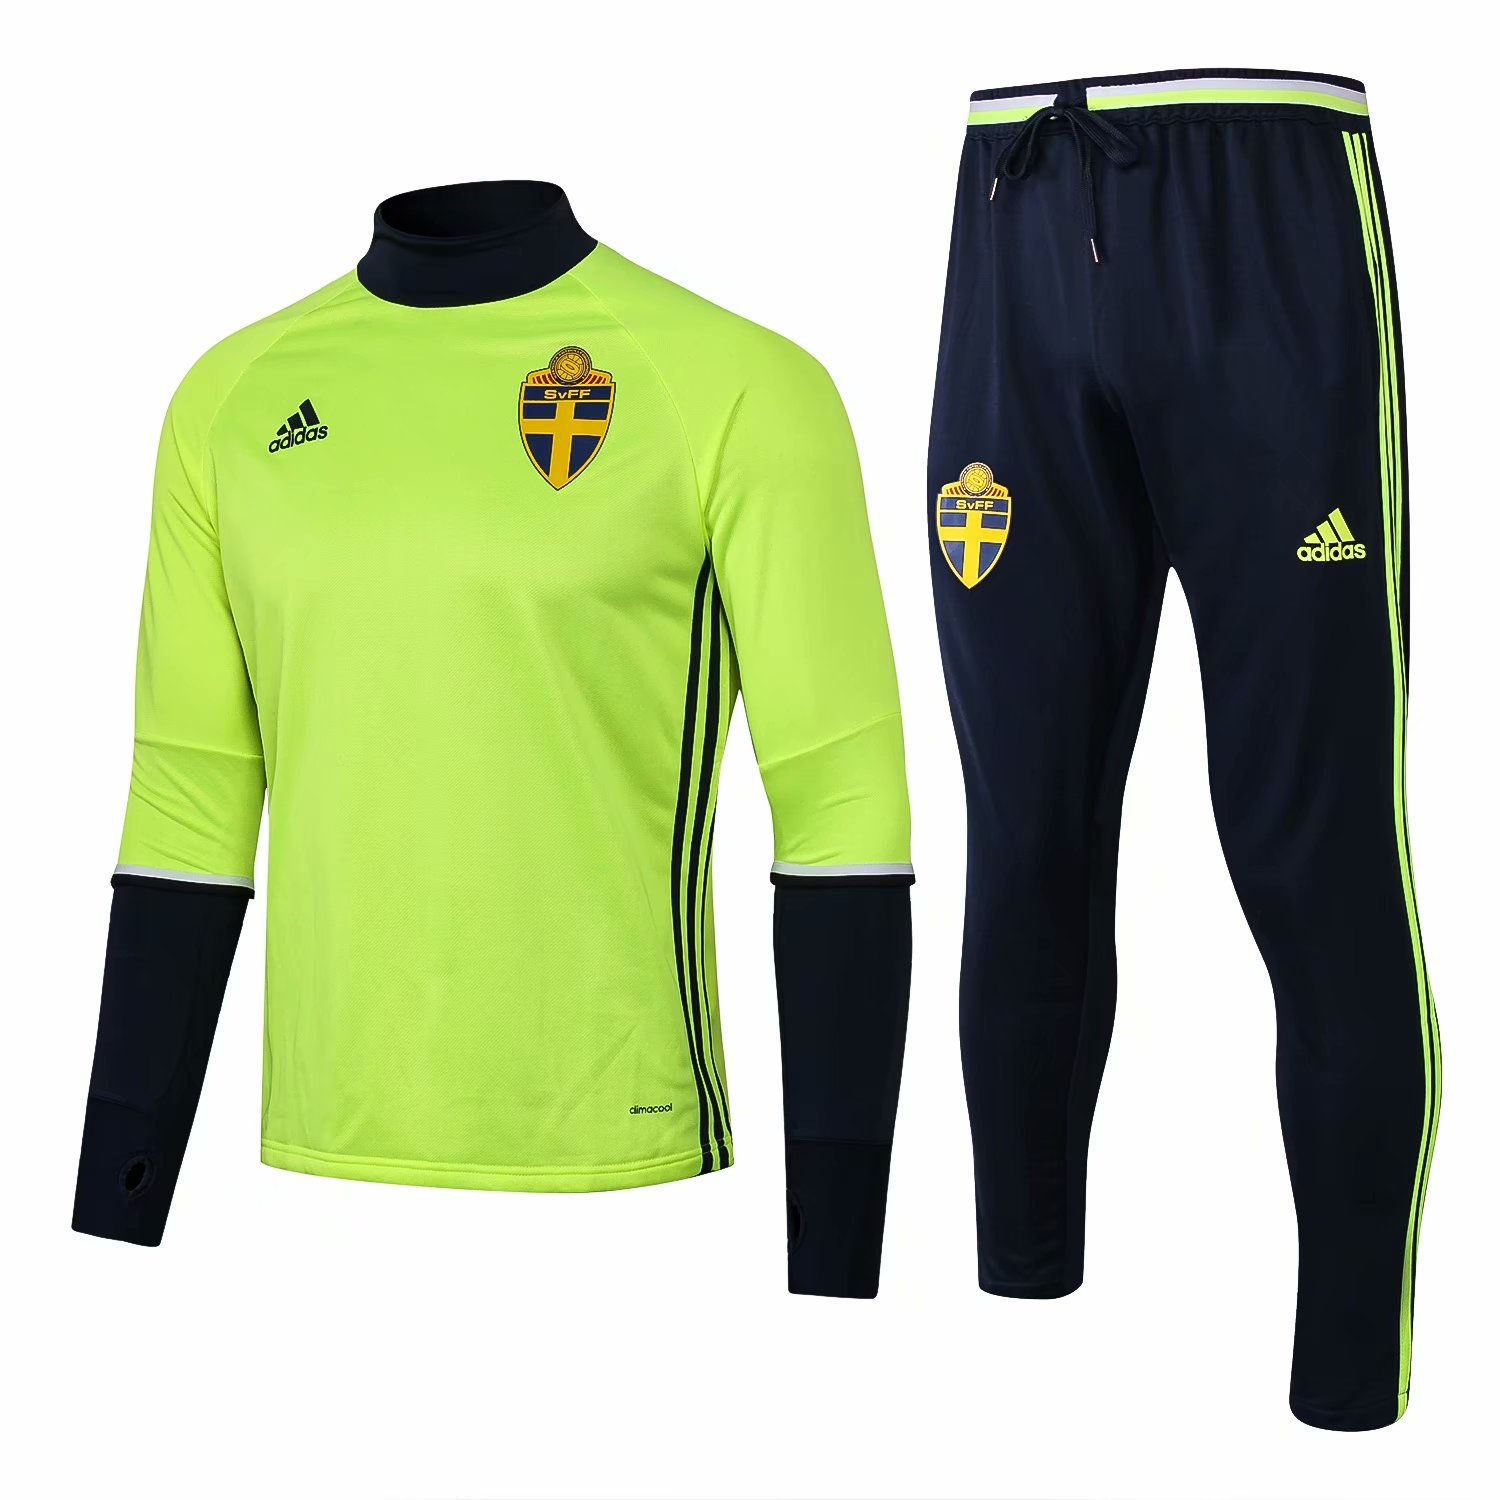 diamante Similar constante  Suecia Amarillo | Training tops, National football teams, Soccer club